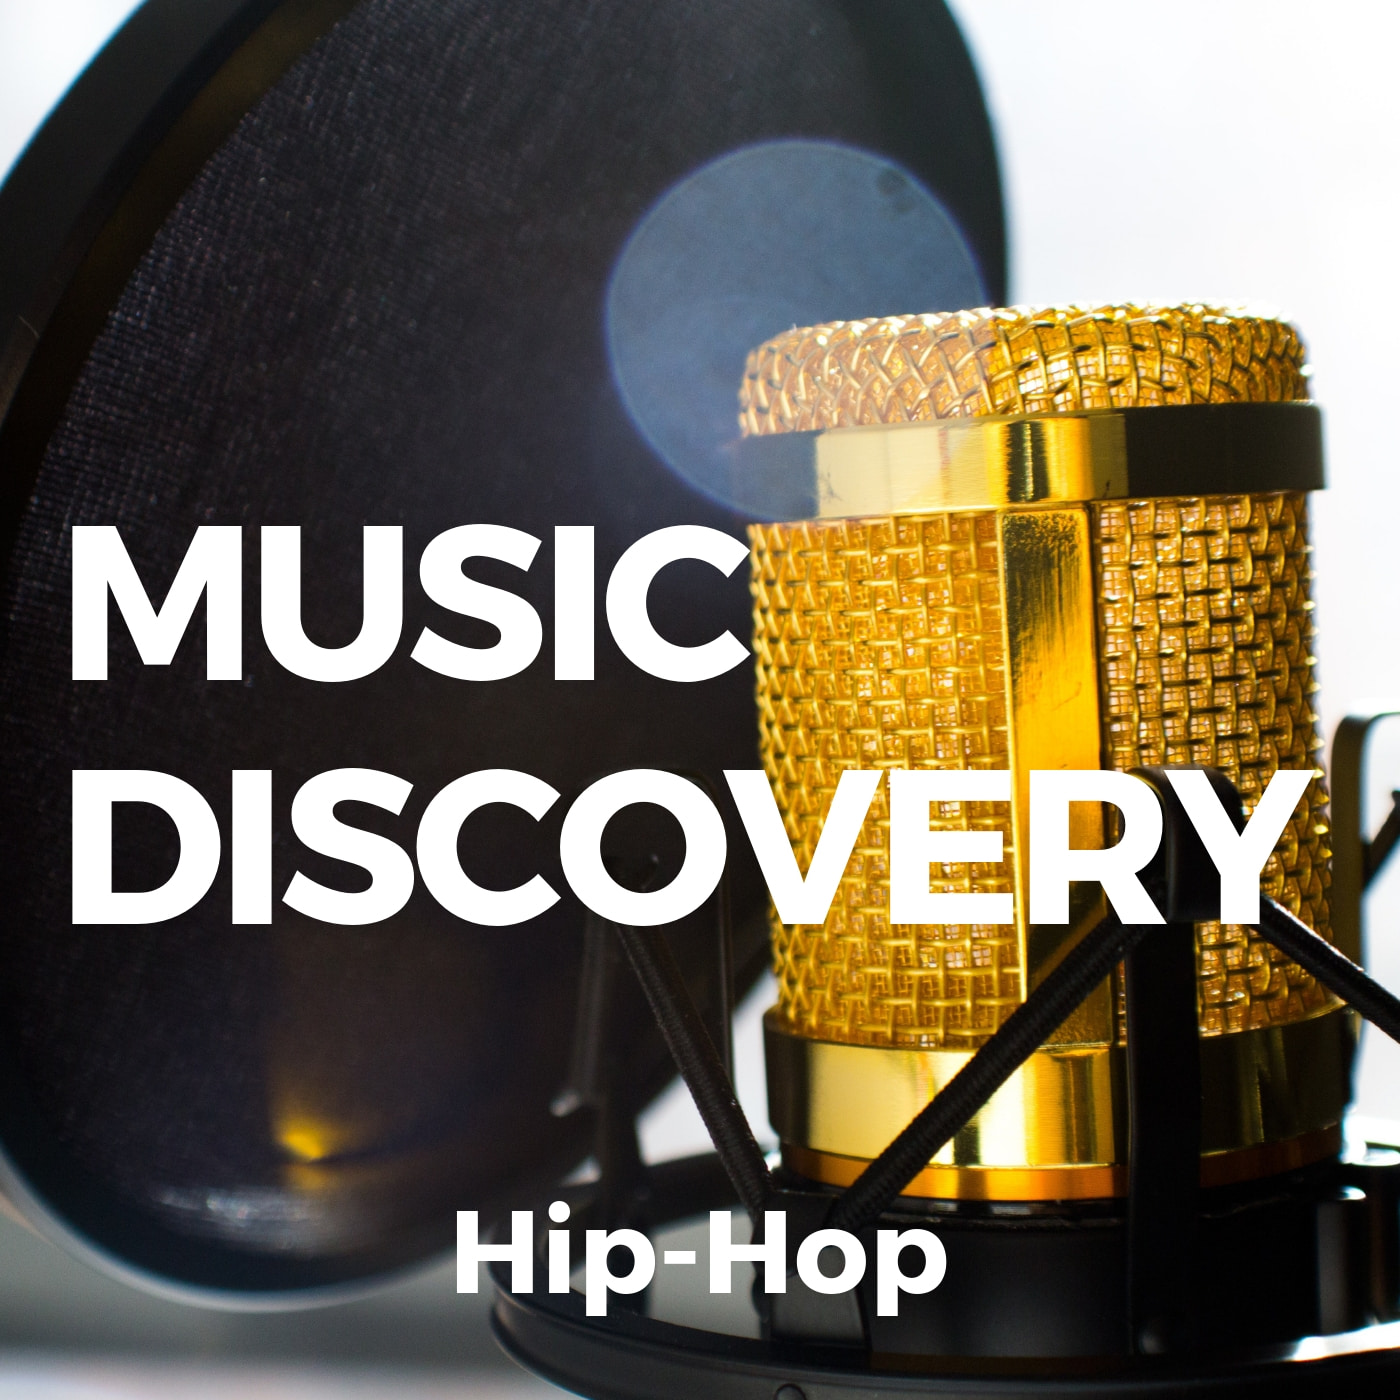 Music Discovery - Hip-Hop playlist